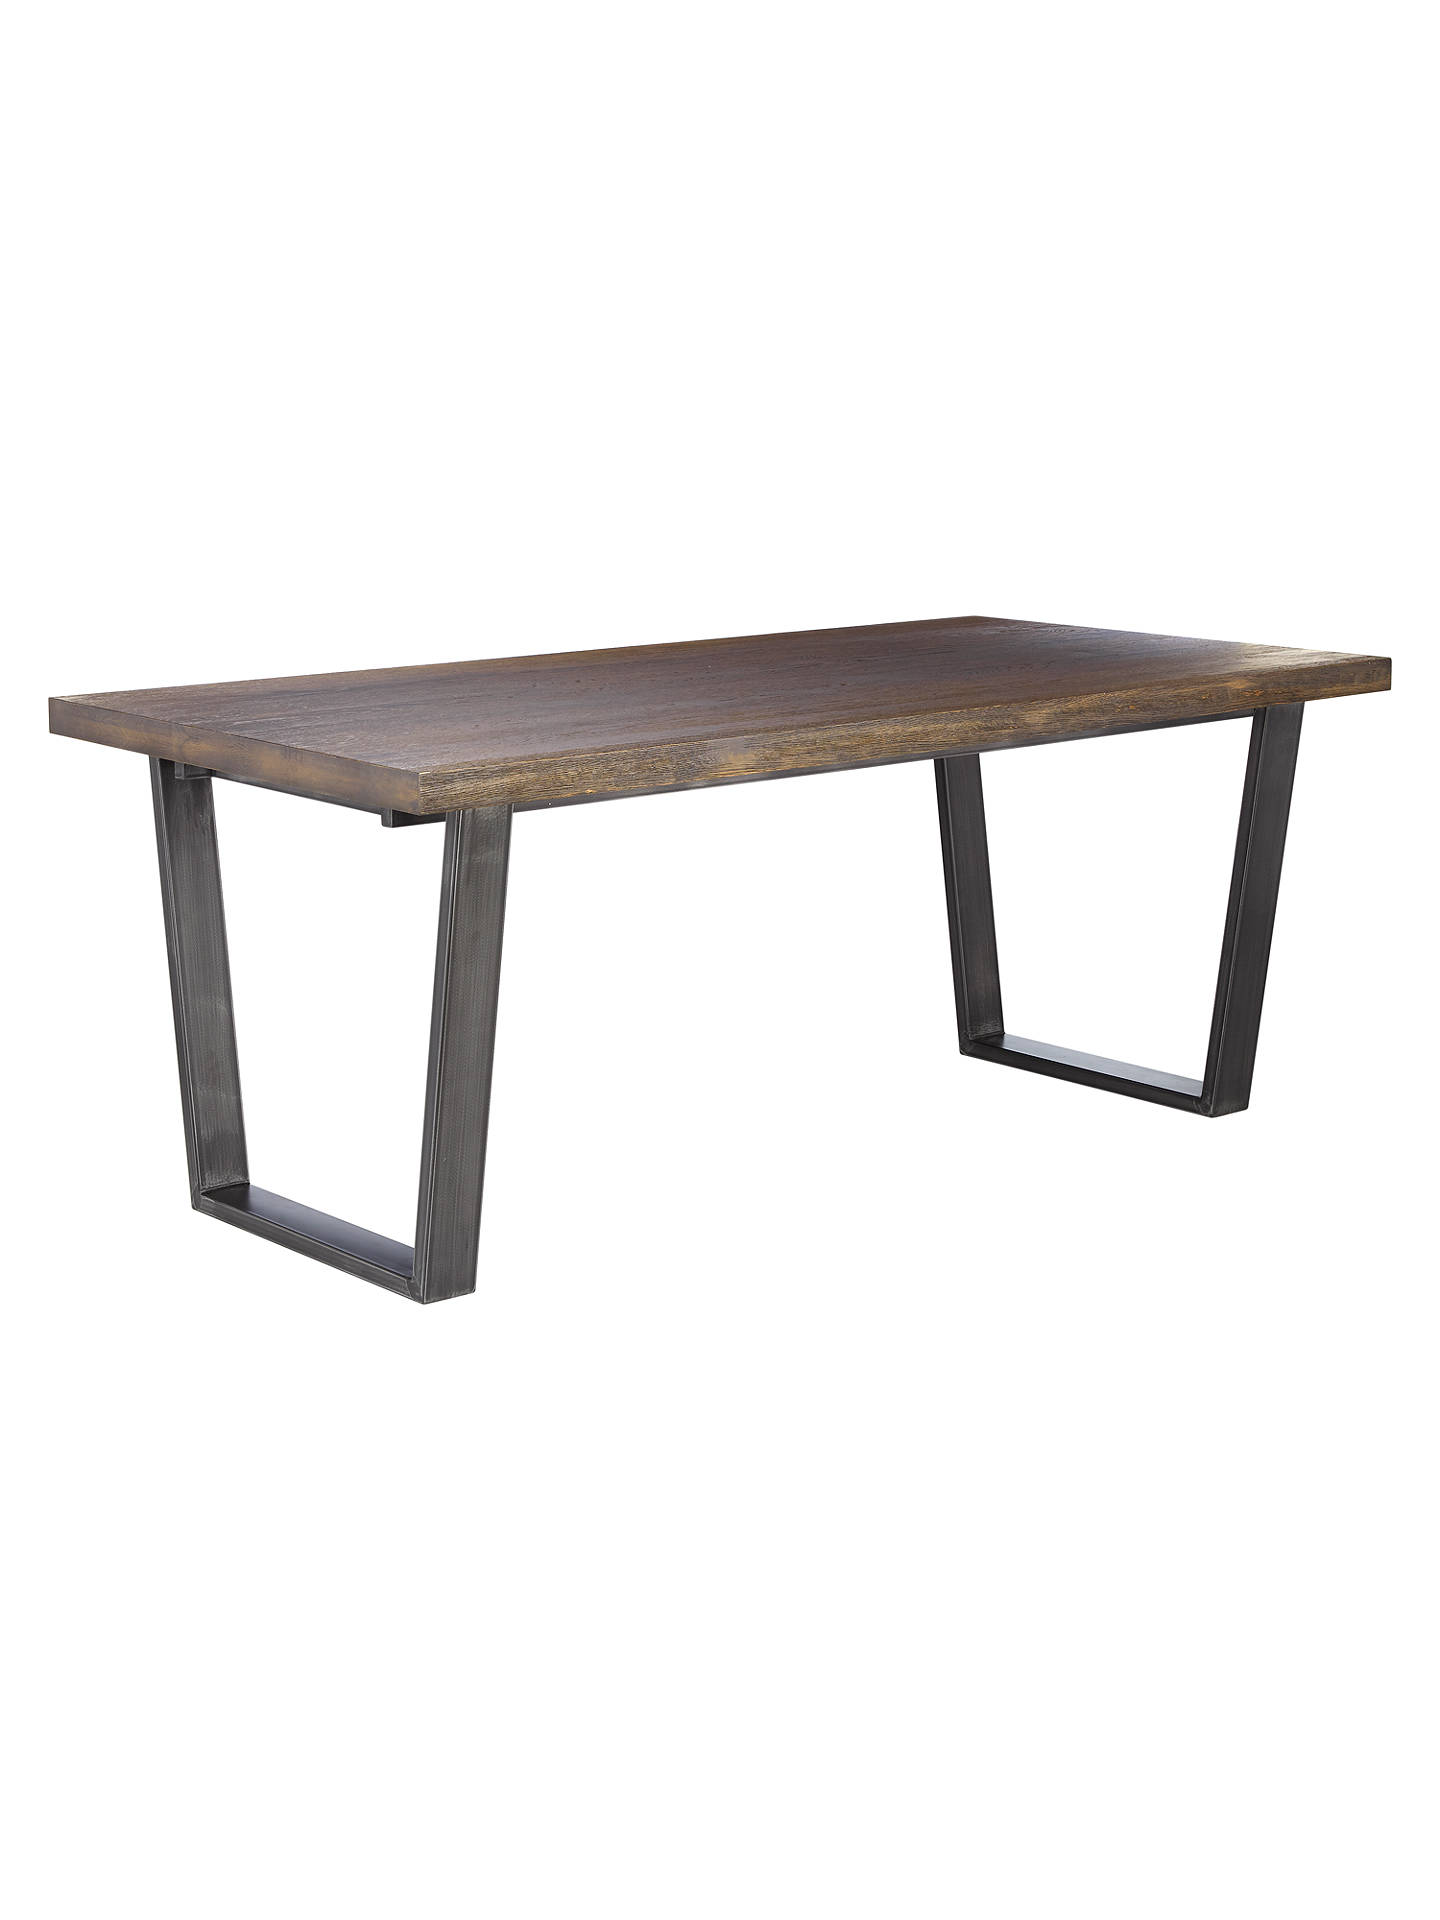 Buy John Lewis & Partners Calia 8 Seater Dining Table, Dark Online at johnlewis.com